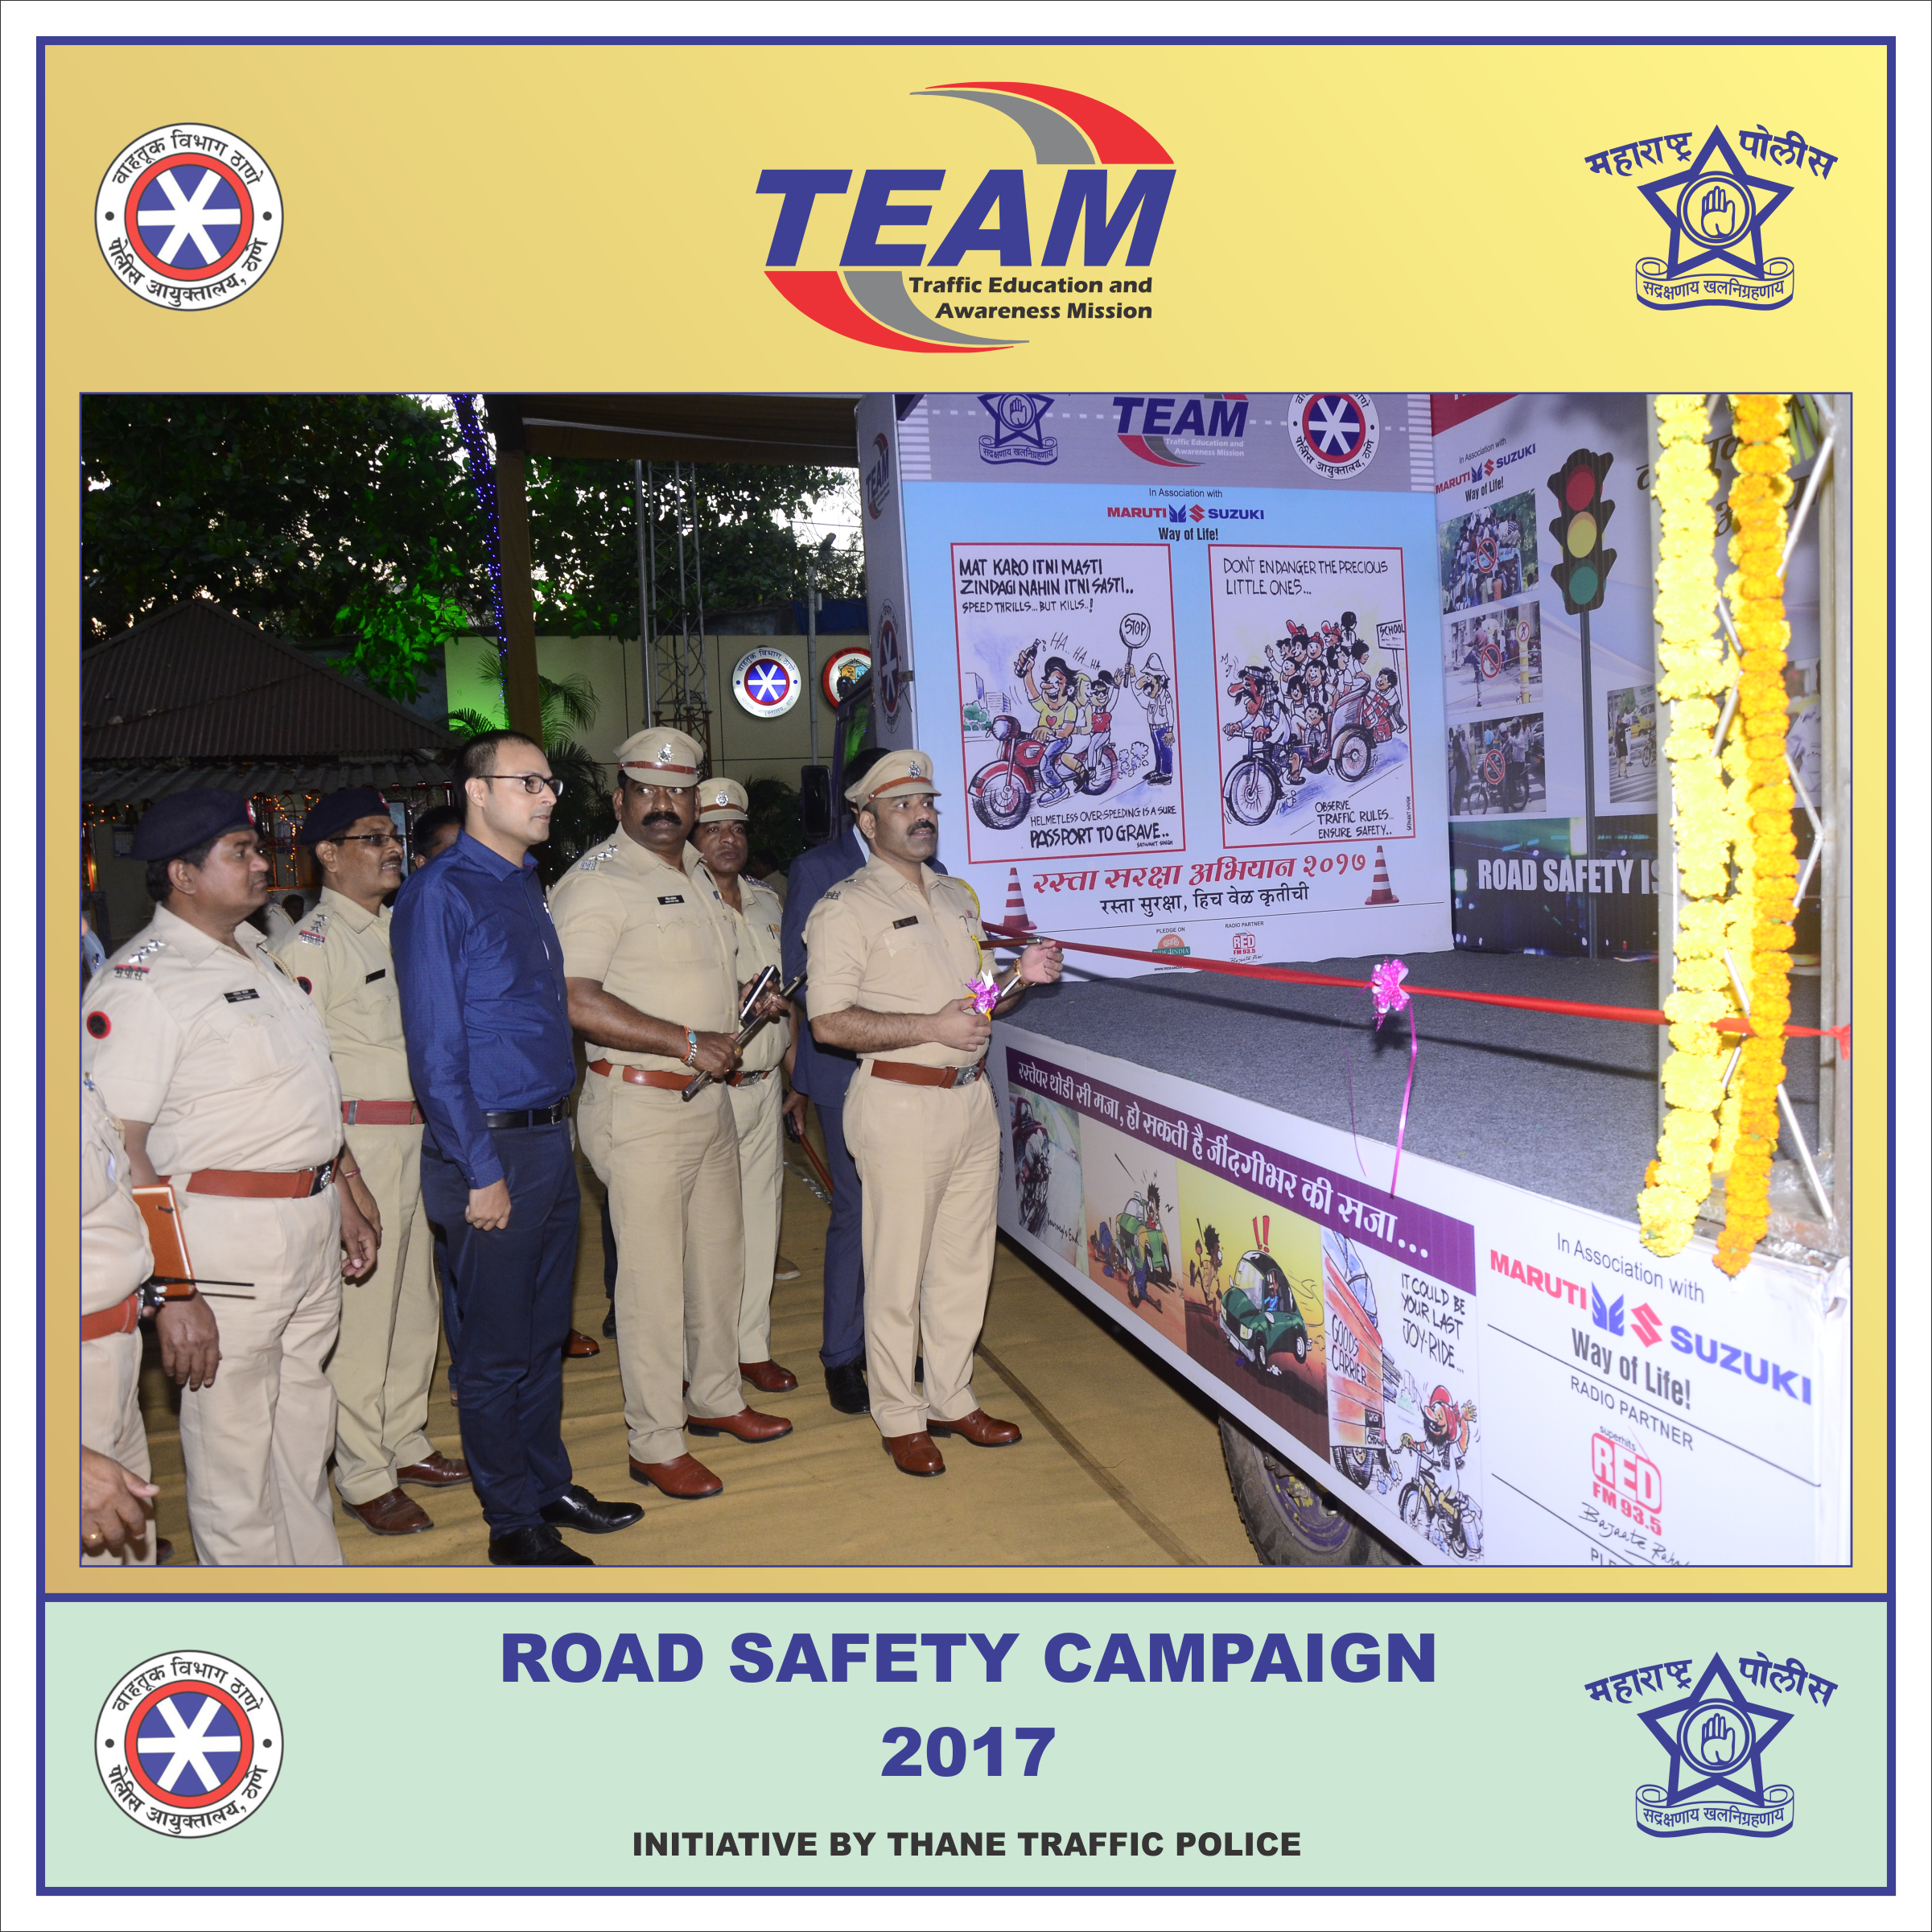 speech on road safety campaign Road safety tips, road safety programs and road safety campaigns are made to promote road safety in india.